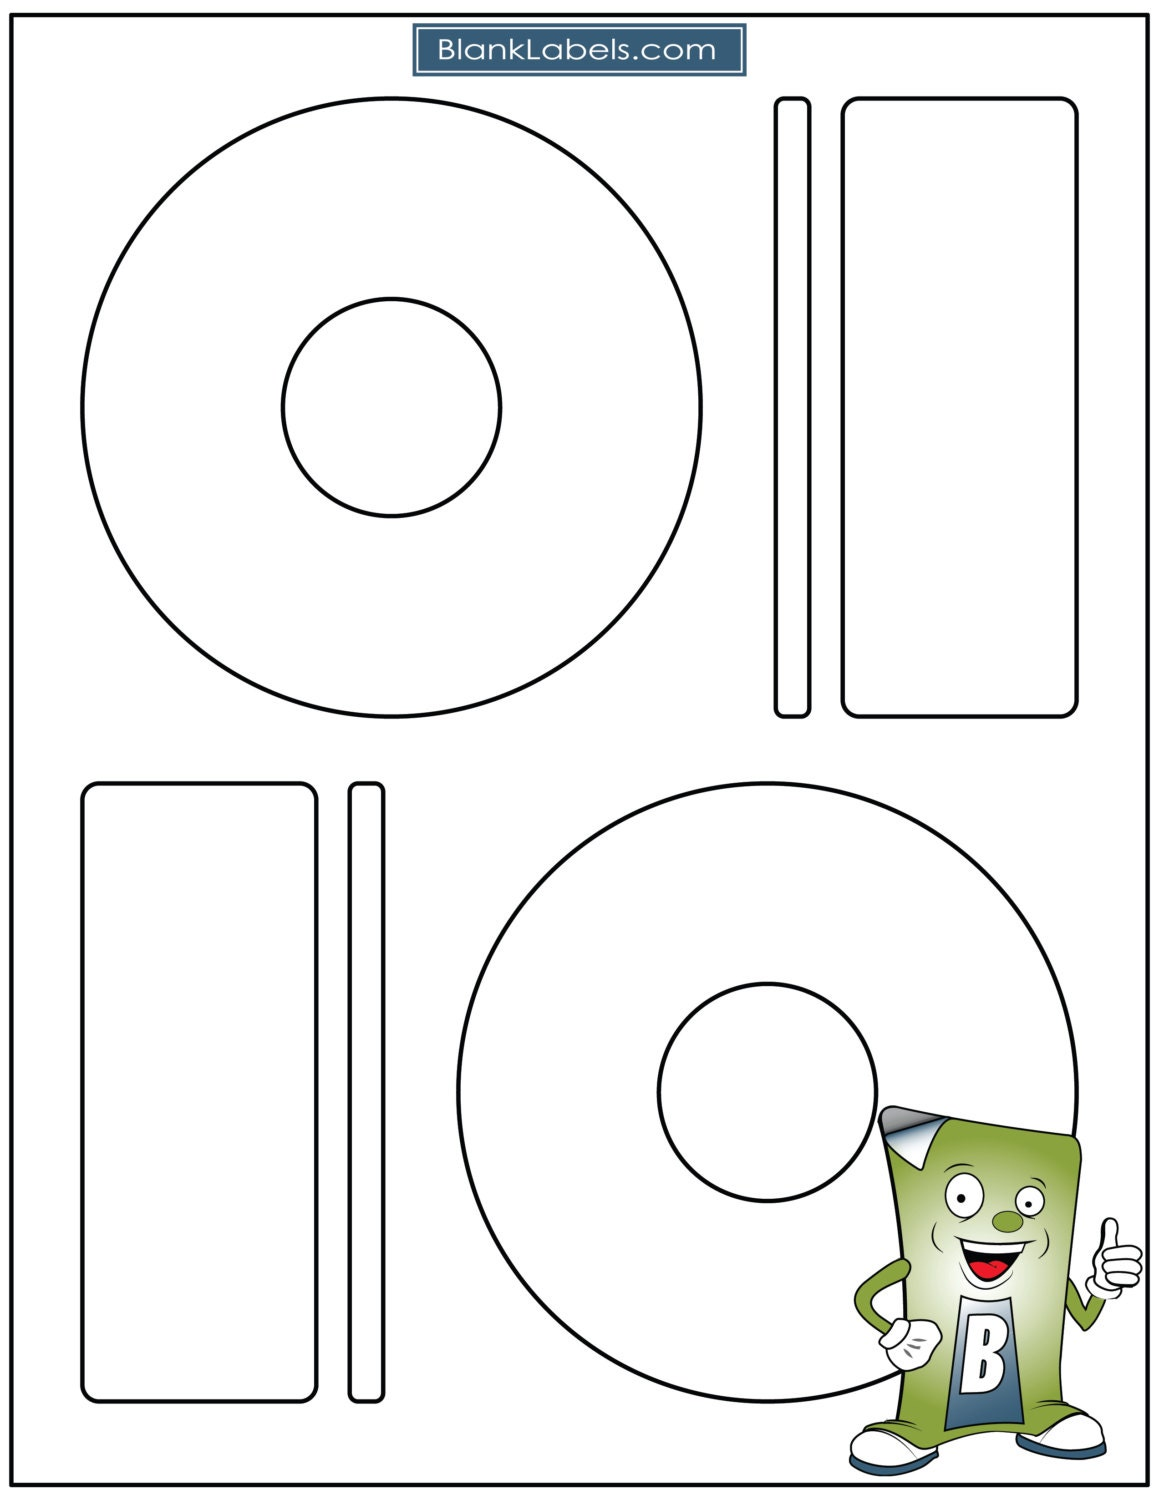 Blank Laser Ink Jet Labels For CD Or DVD Sheets - Memorex cd label template